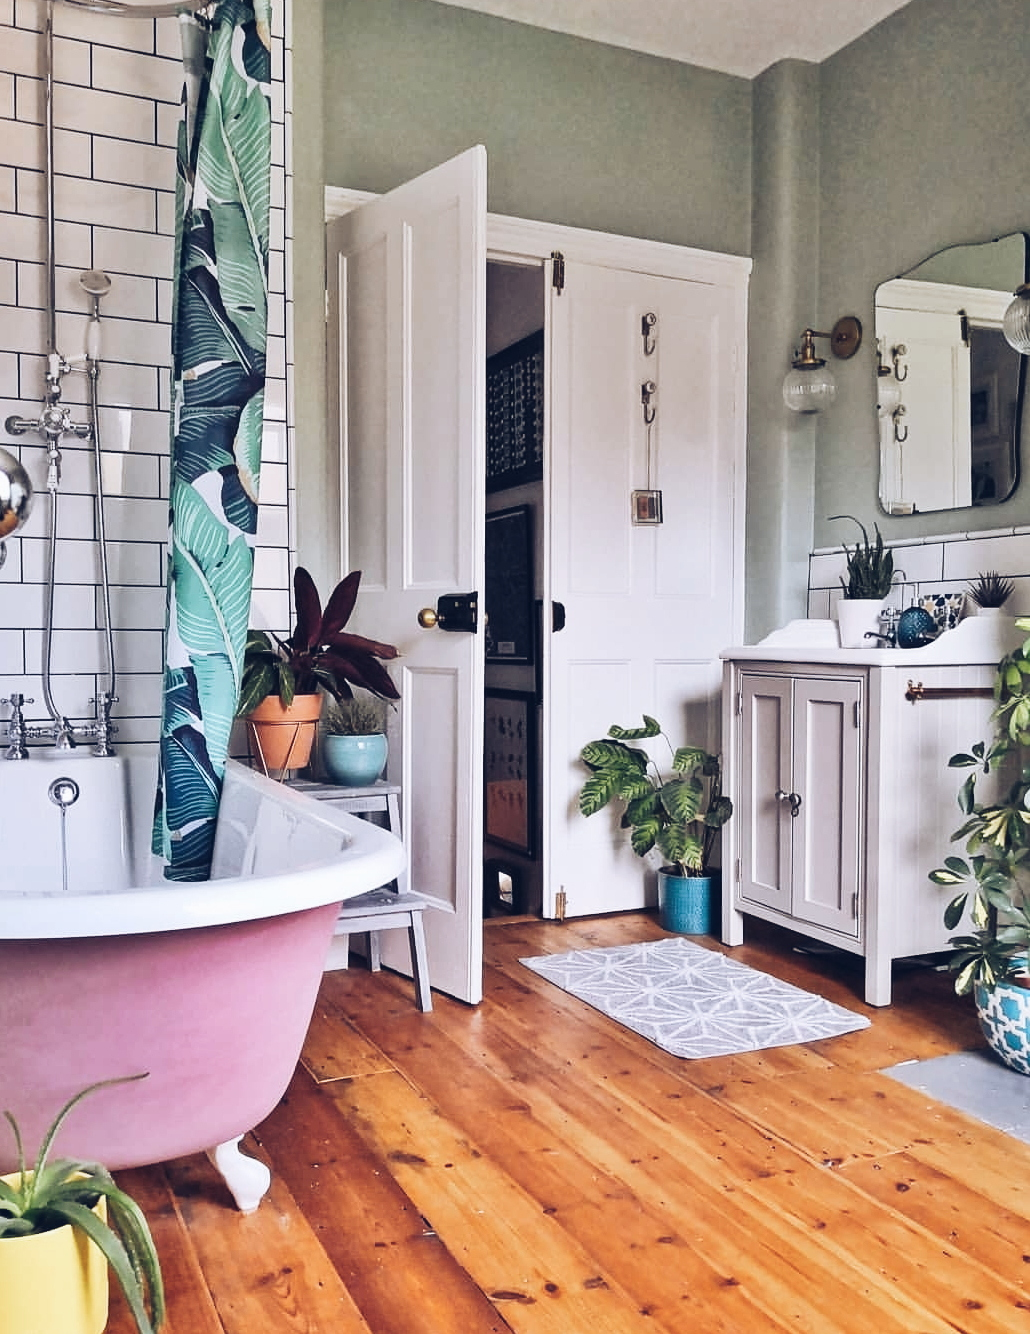 This was the room in  Vic's house  that I first fell in love with. She had me at hello with her pink bath.